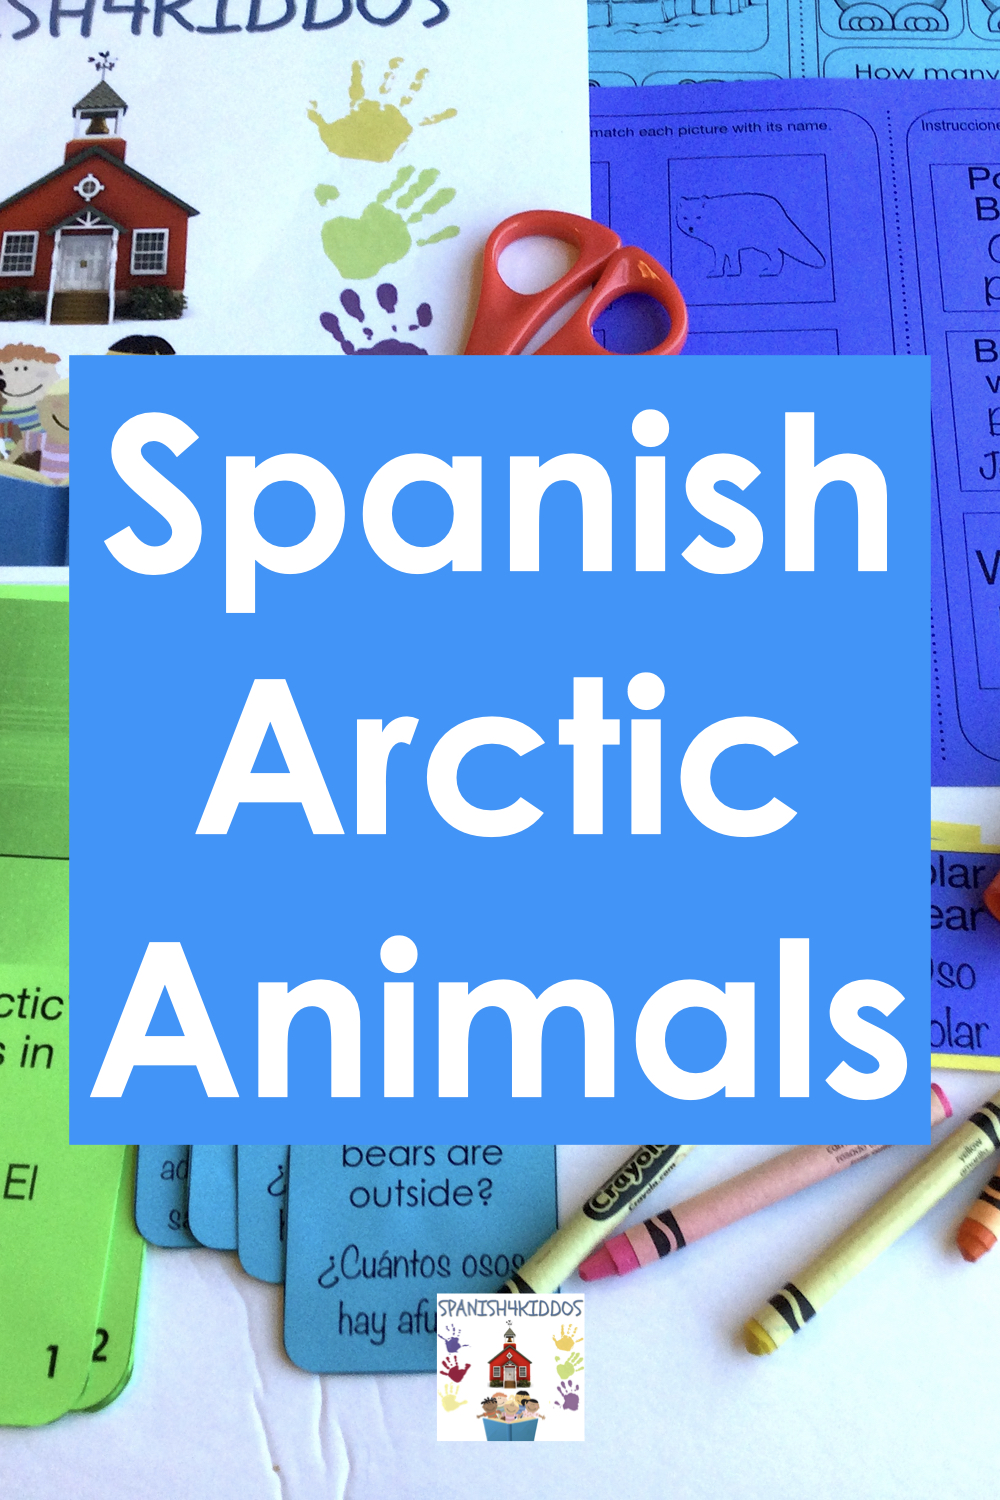 Spanish arctic animals